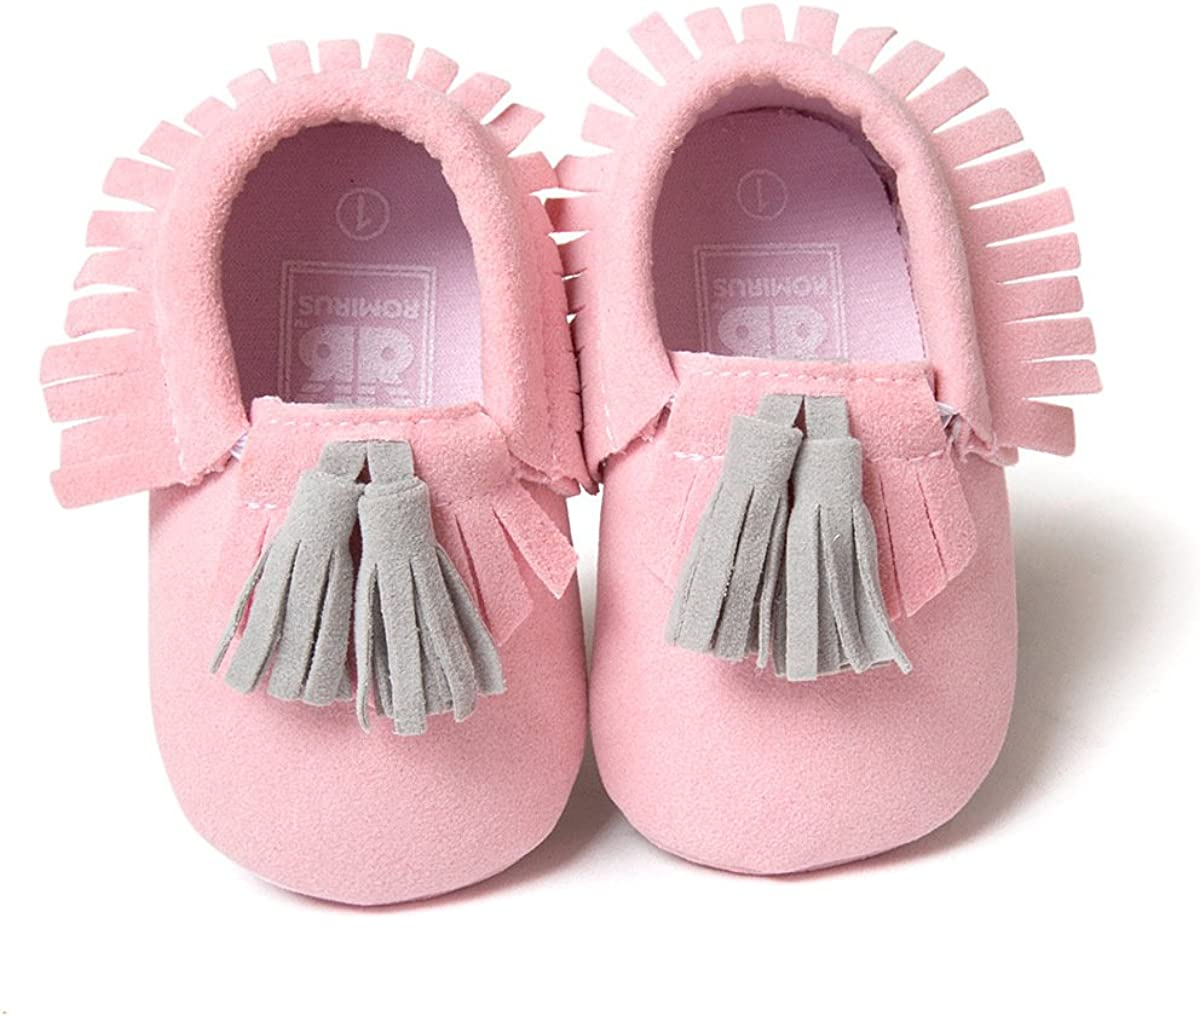 Save Beautiful Infant Baby Boys Girls Crib Shoes PU Leather Tassel Moccasin Prewalker Loafers First Walkers